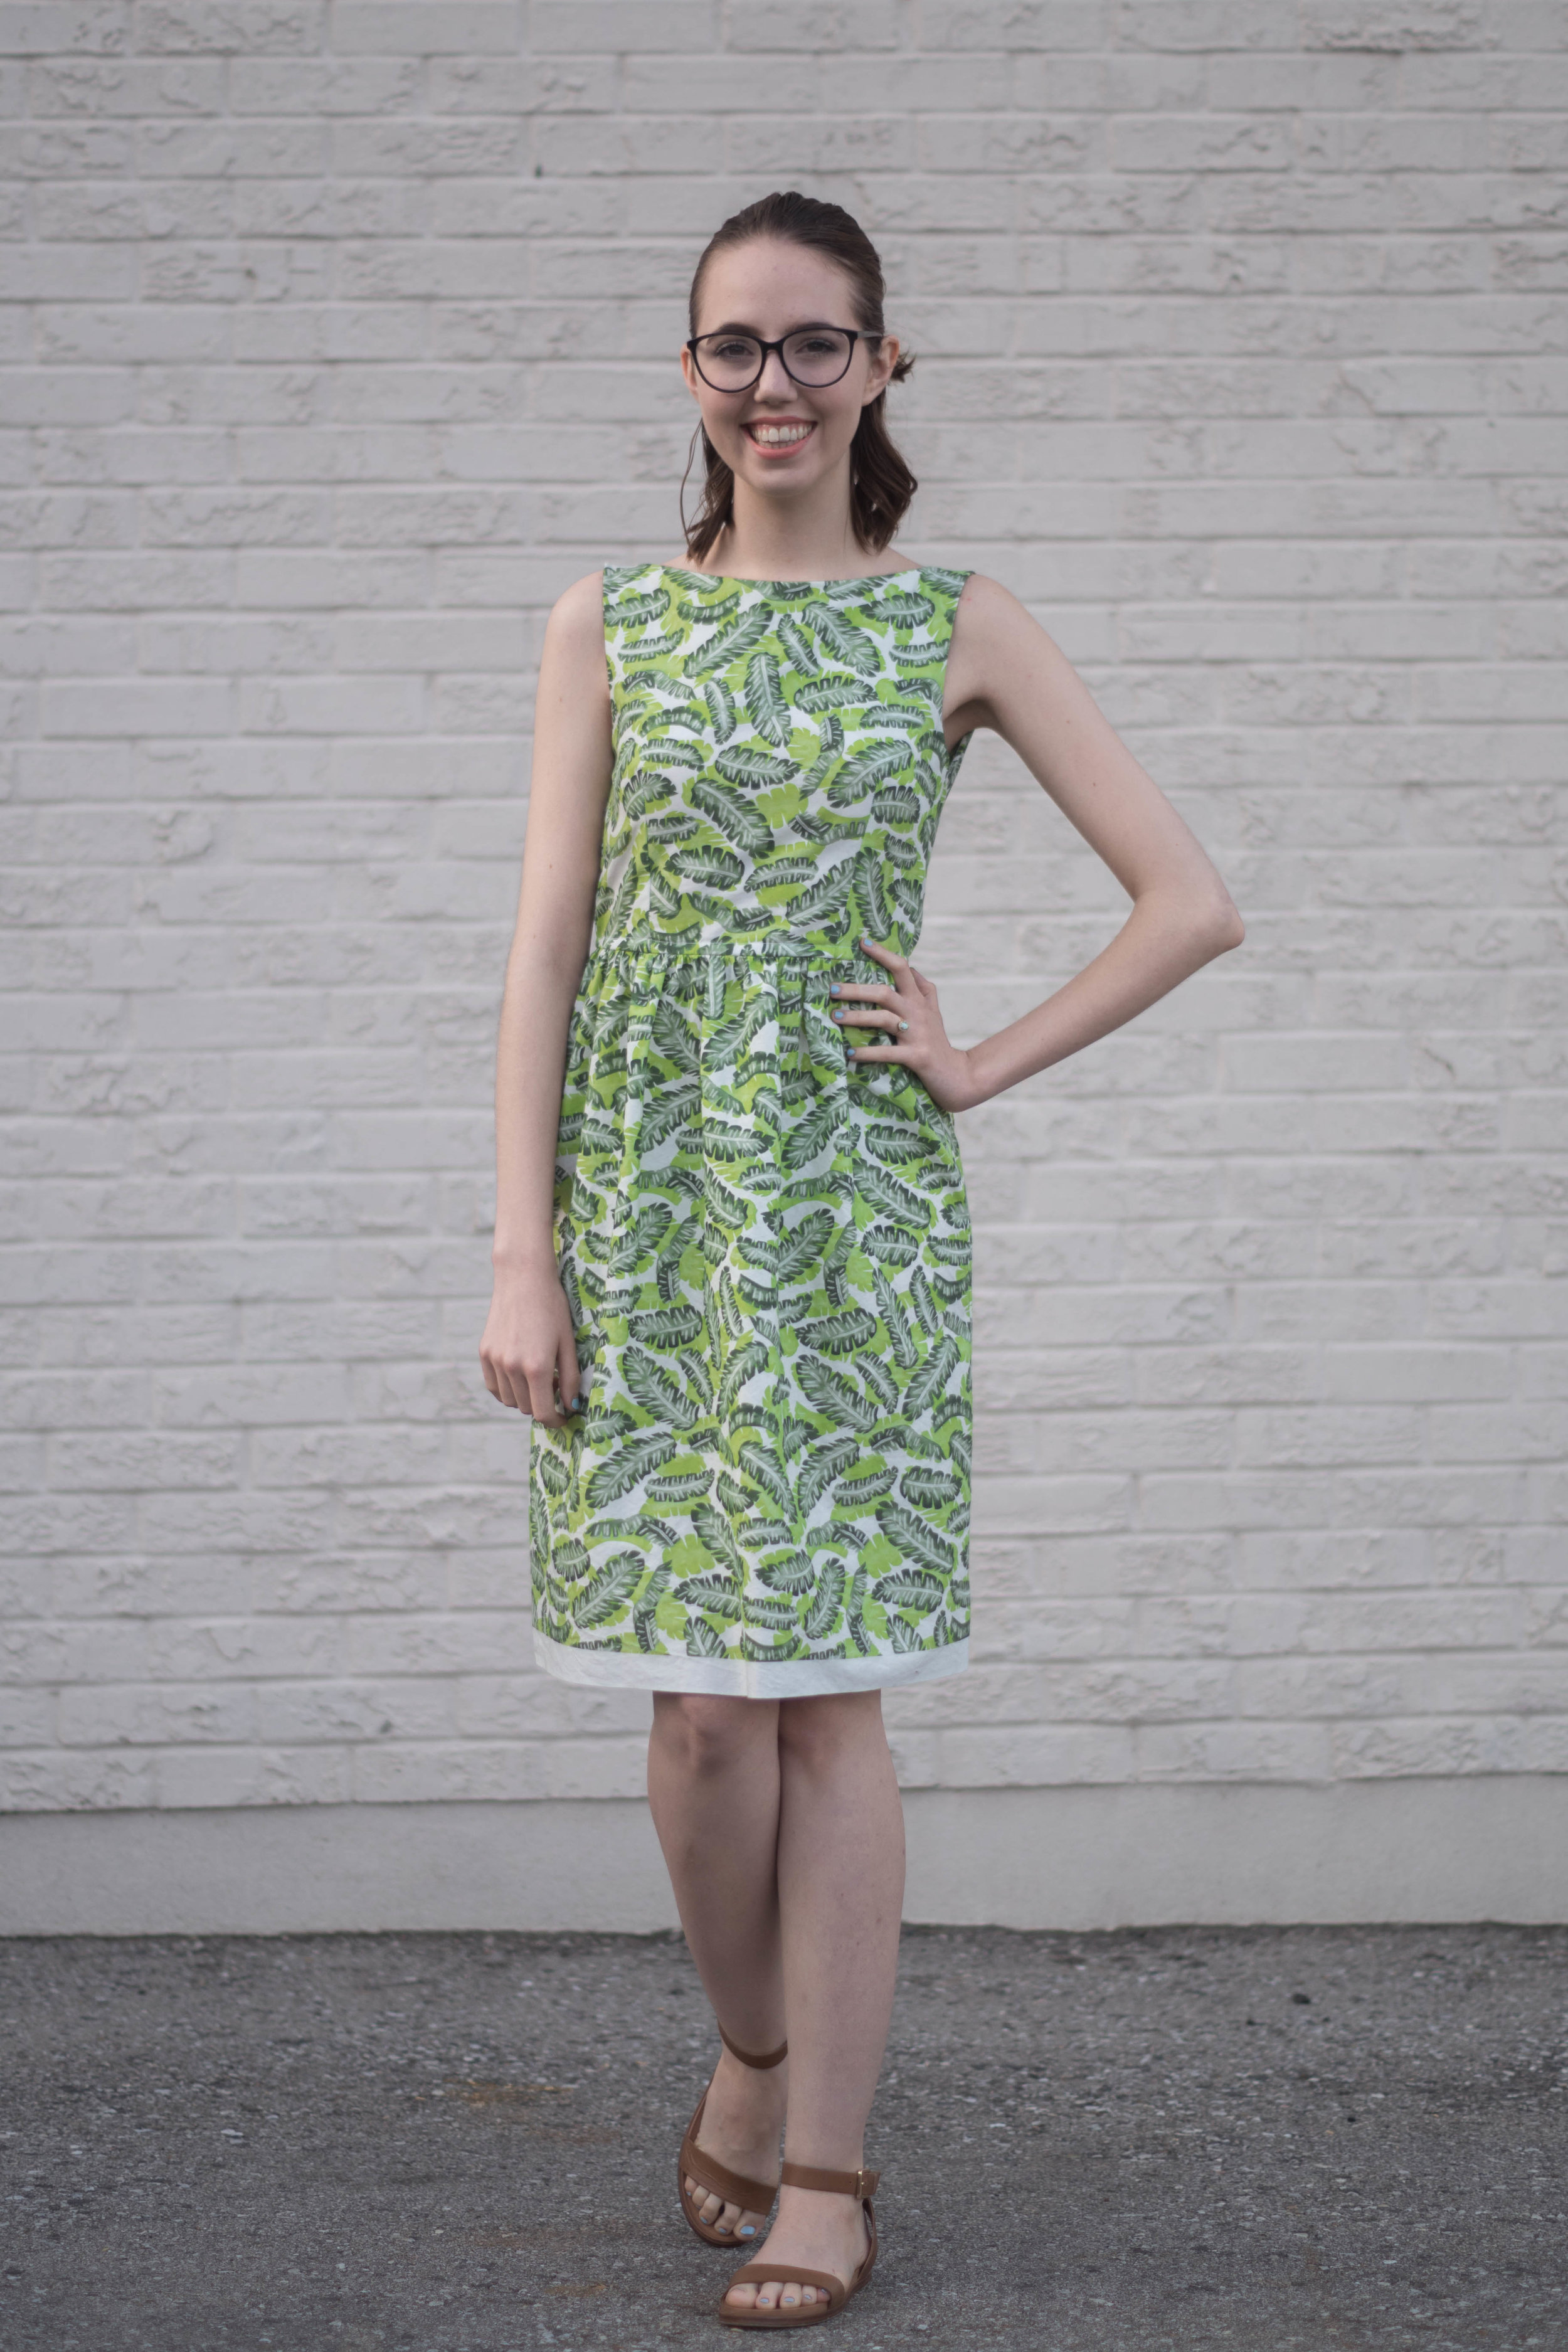 This dress was sewn up using a FREE pattern! Click through to find out how to sew your own tropical summer dress.